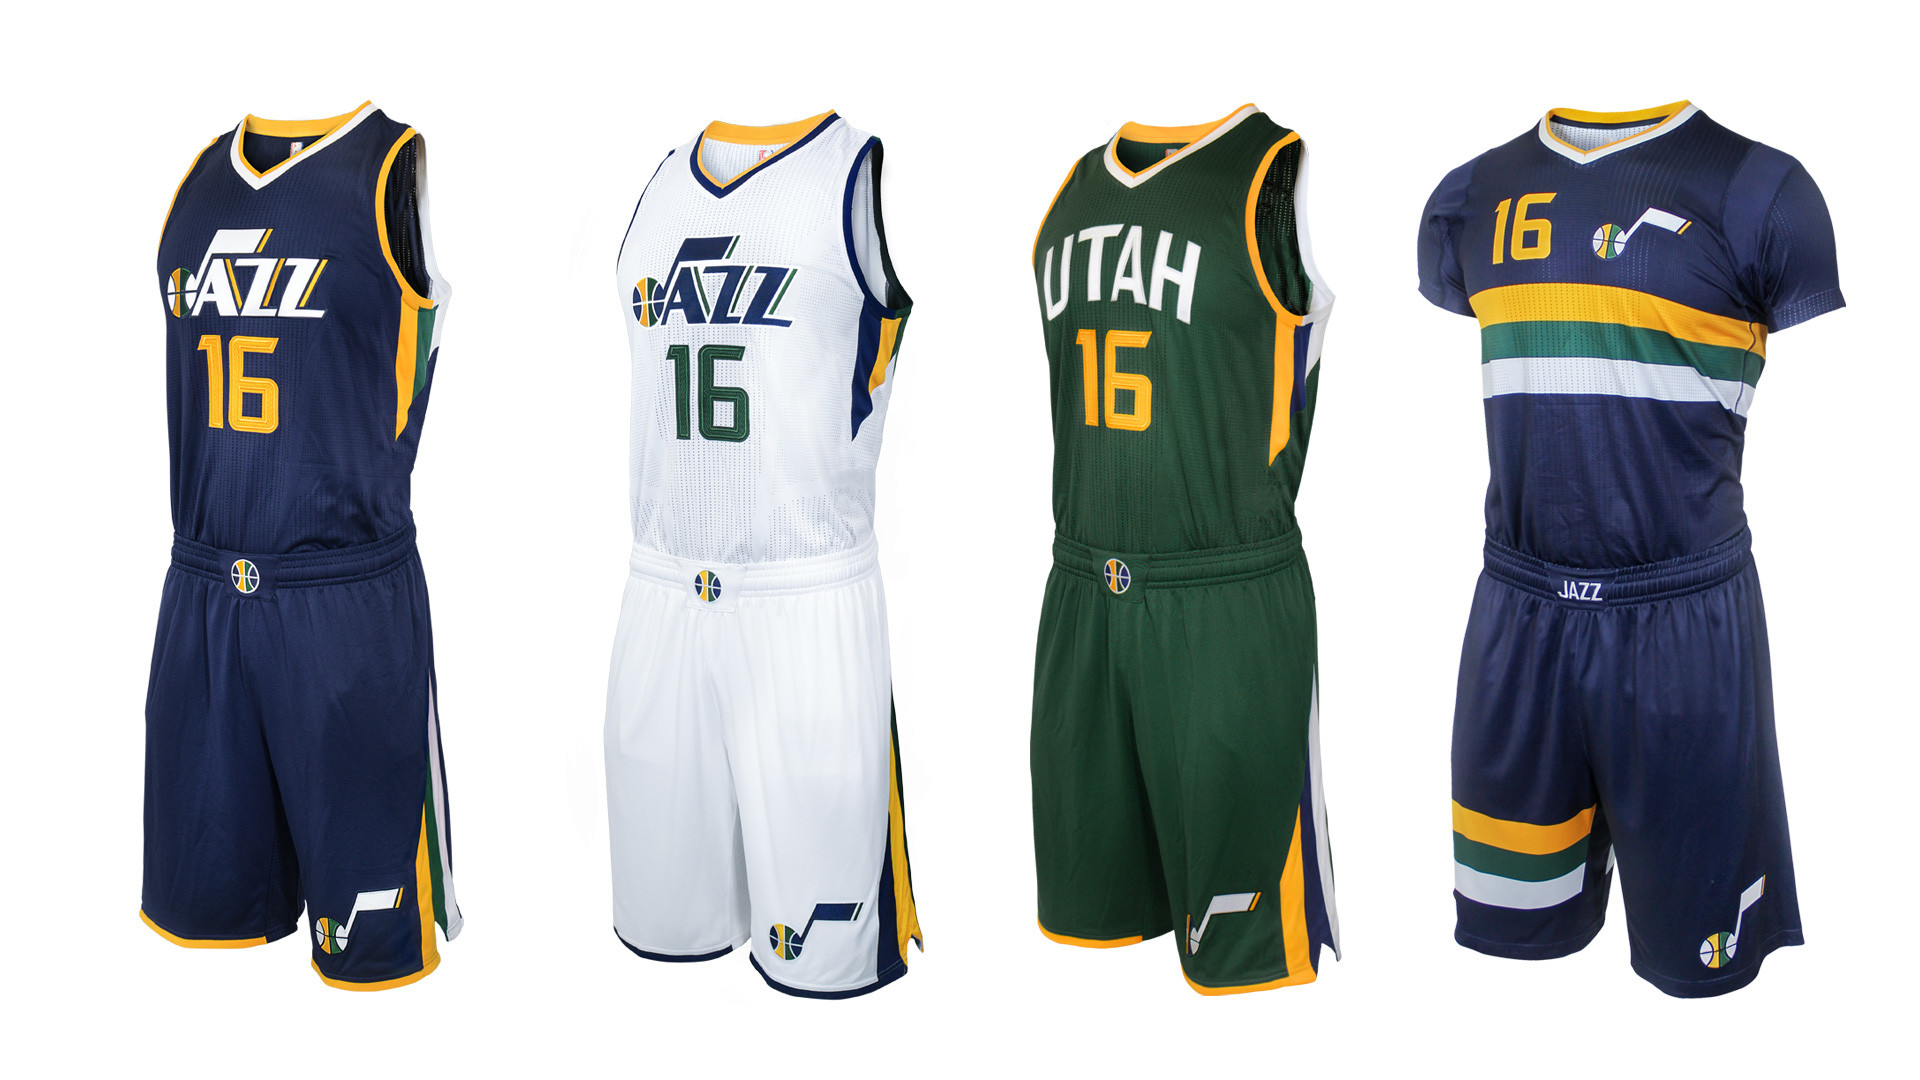 Res: 1920x1080, Utah Jazz reveals some new with hint of old in refresh to uniforms, logo |  NBA | Sporting News